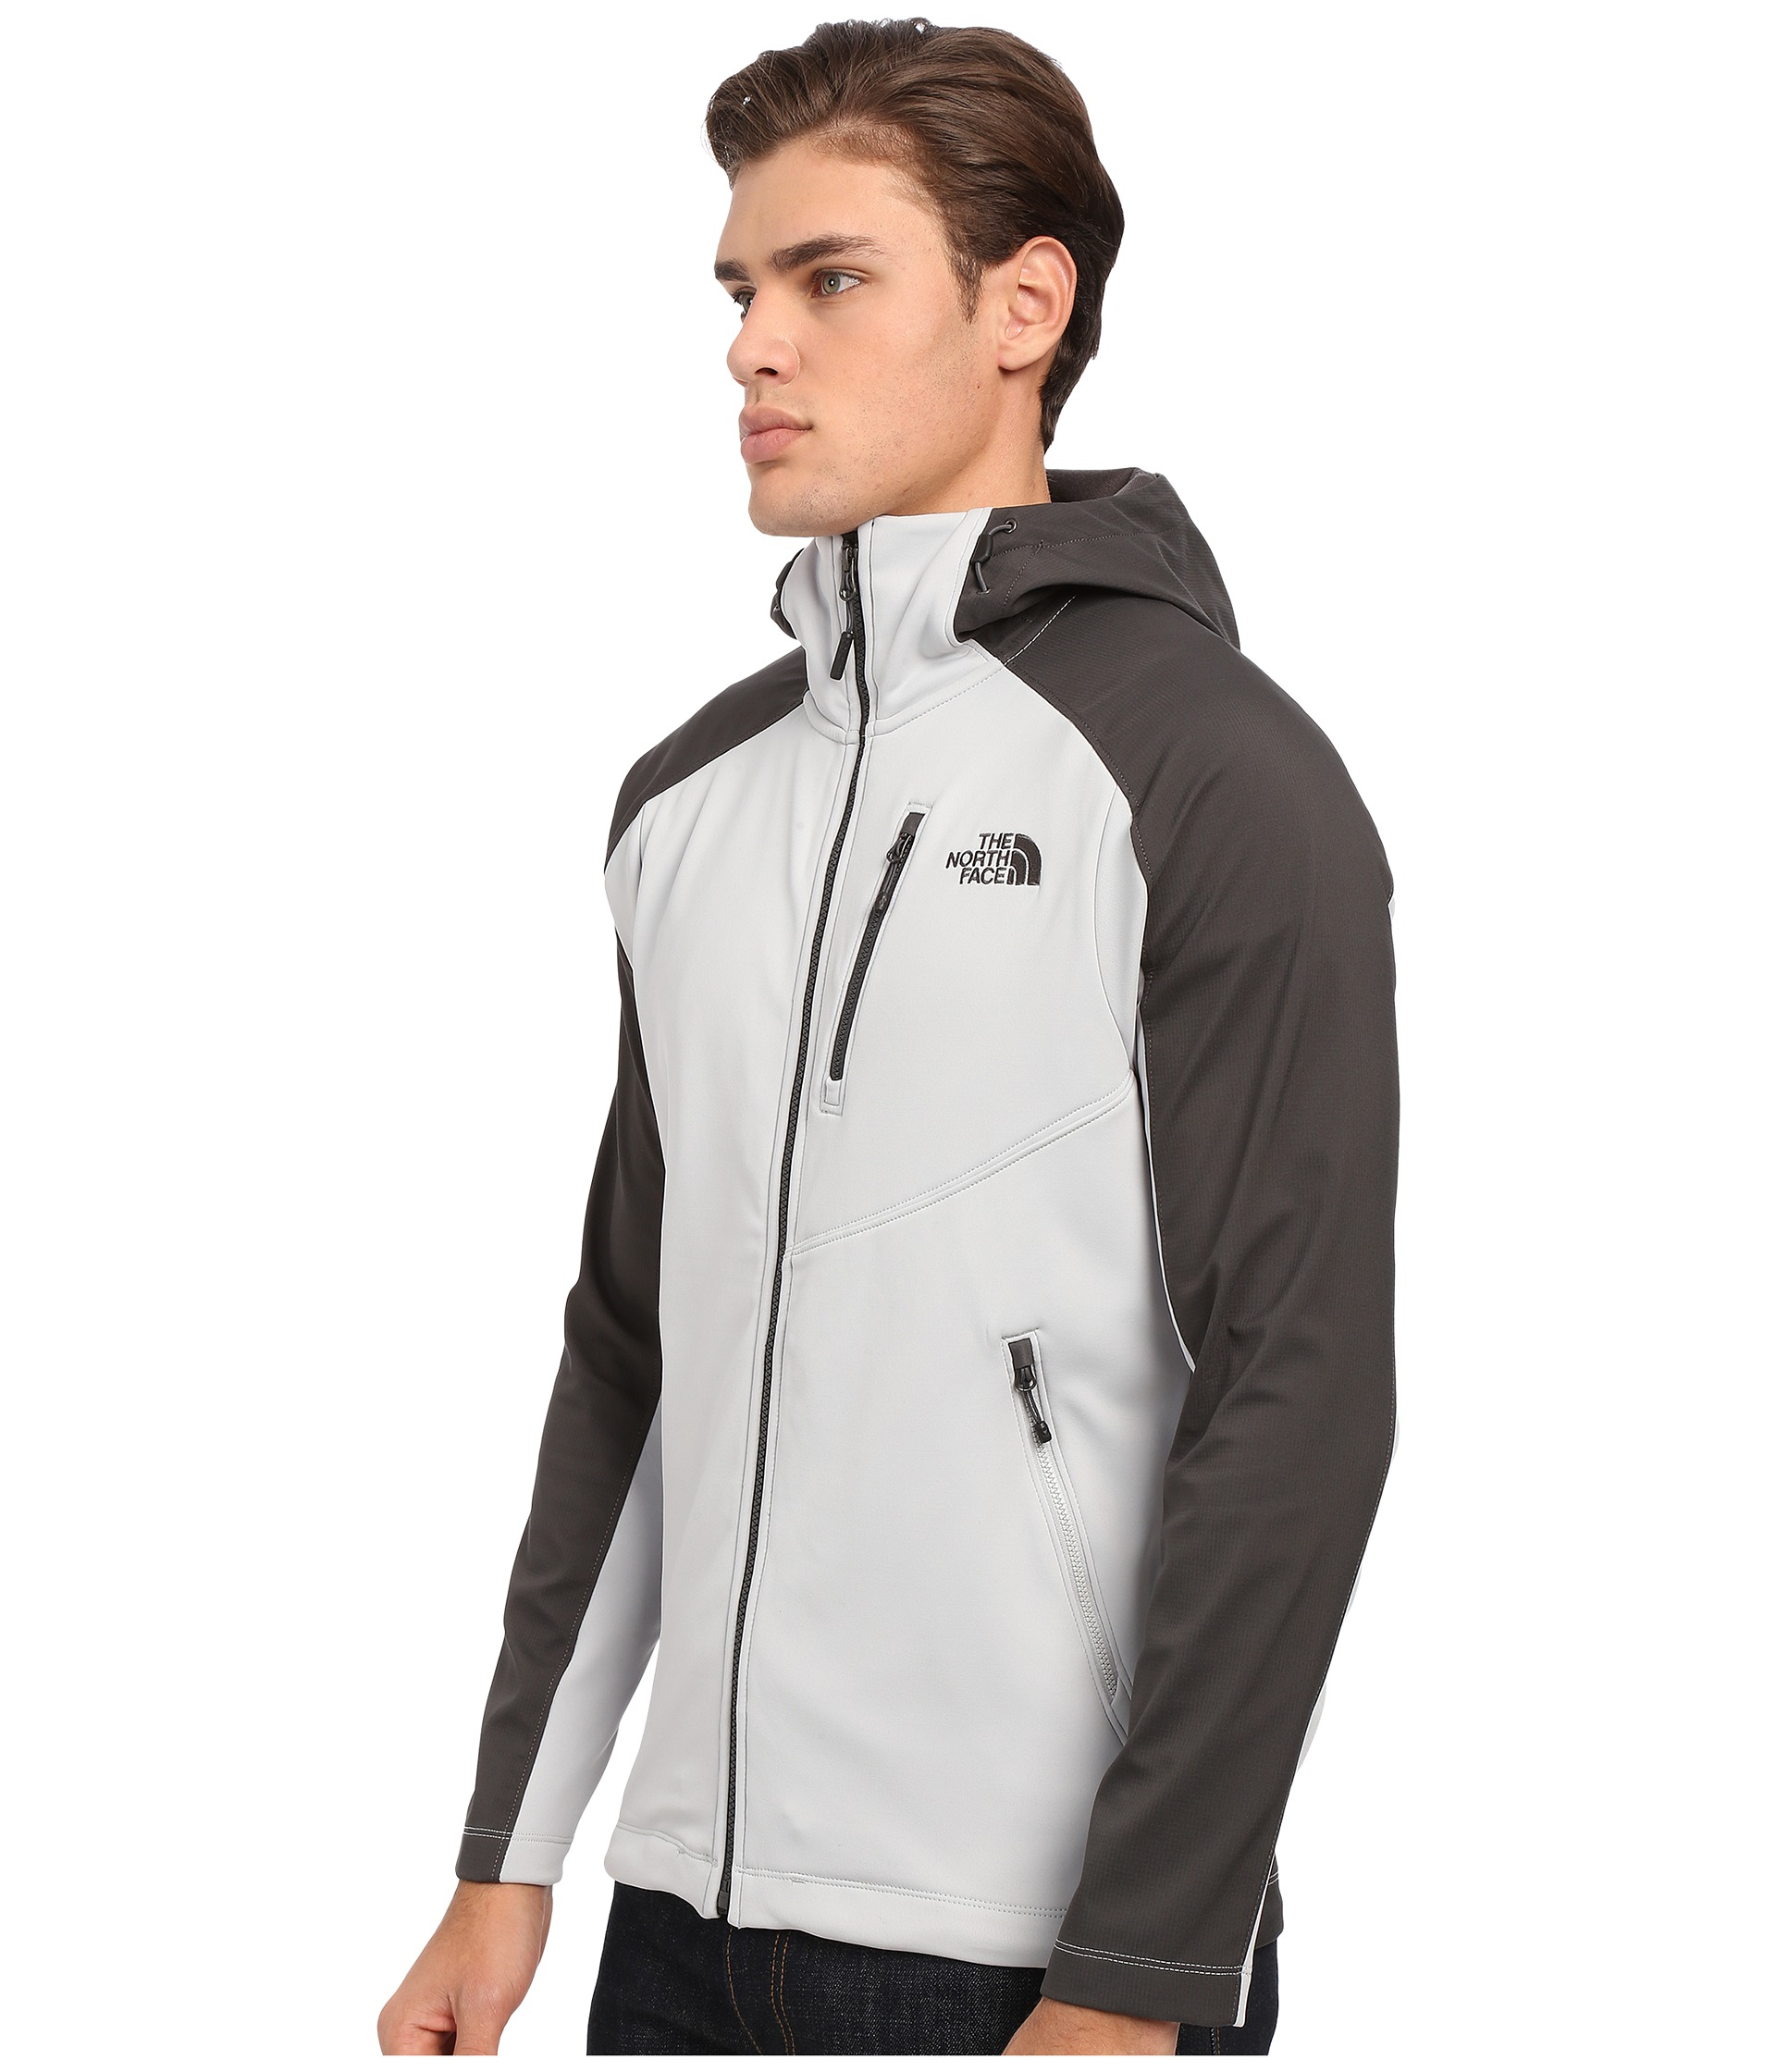 dfbf09a2174 Lyst - The North Face Tenacious Hybrid Hoodie in Black for Men